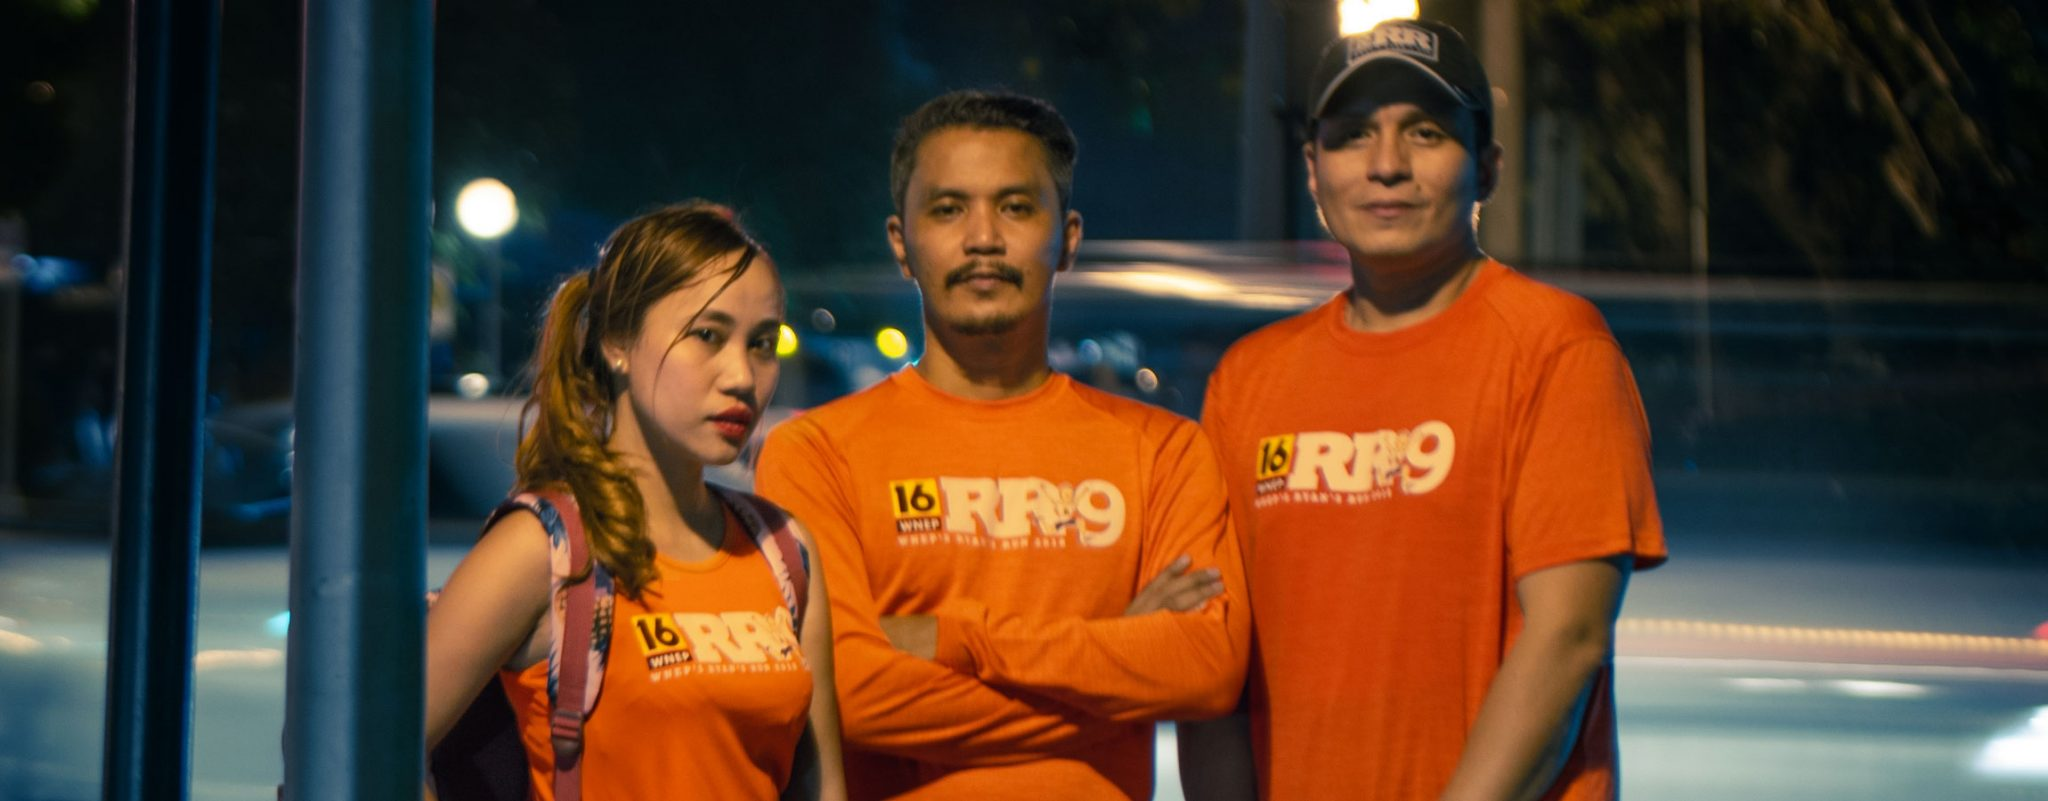 Philippine call center reaffirms support for a worthy cause, joins NYC Marathon